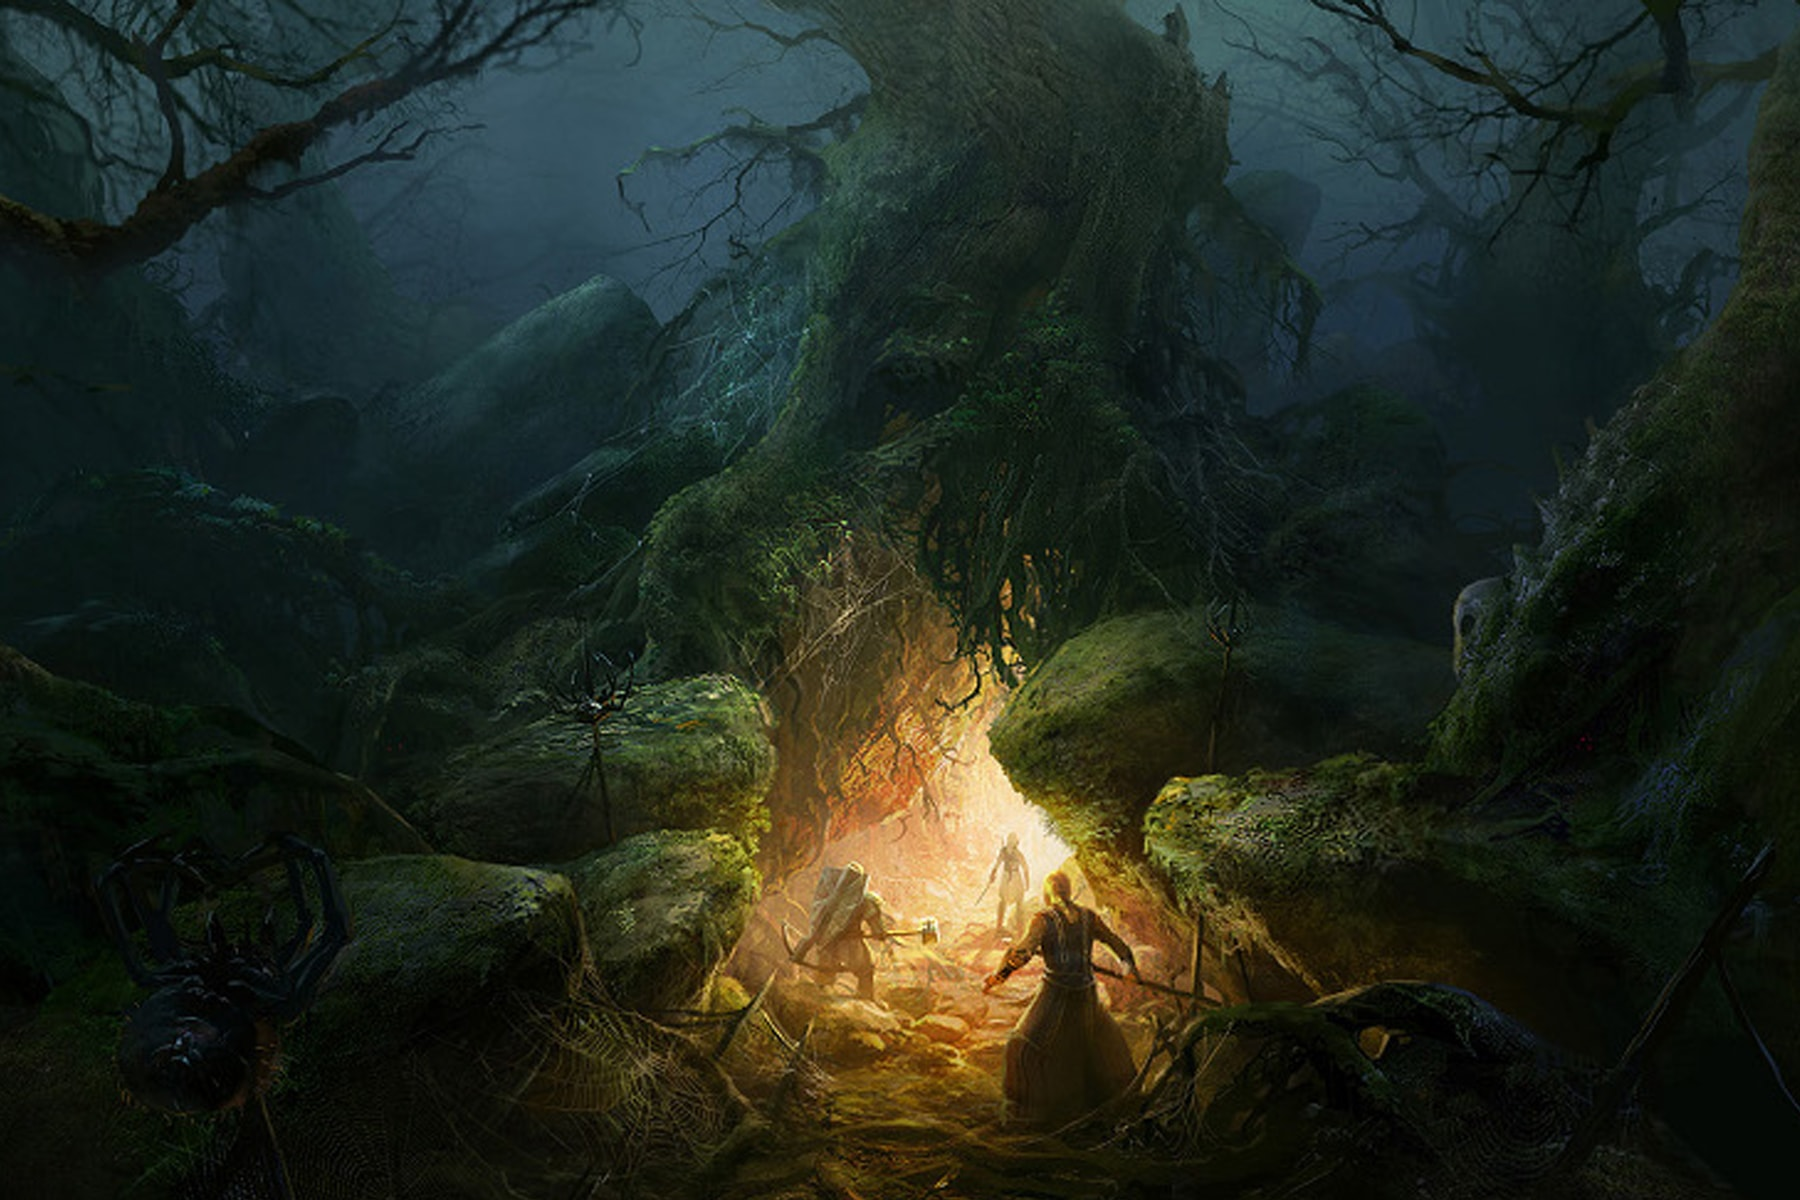 Travelers pass through a tunnel carved out of a huge tree trunk in an illustration for the Lord of the Rings game